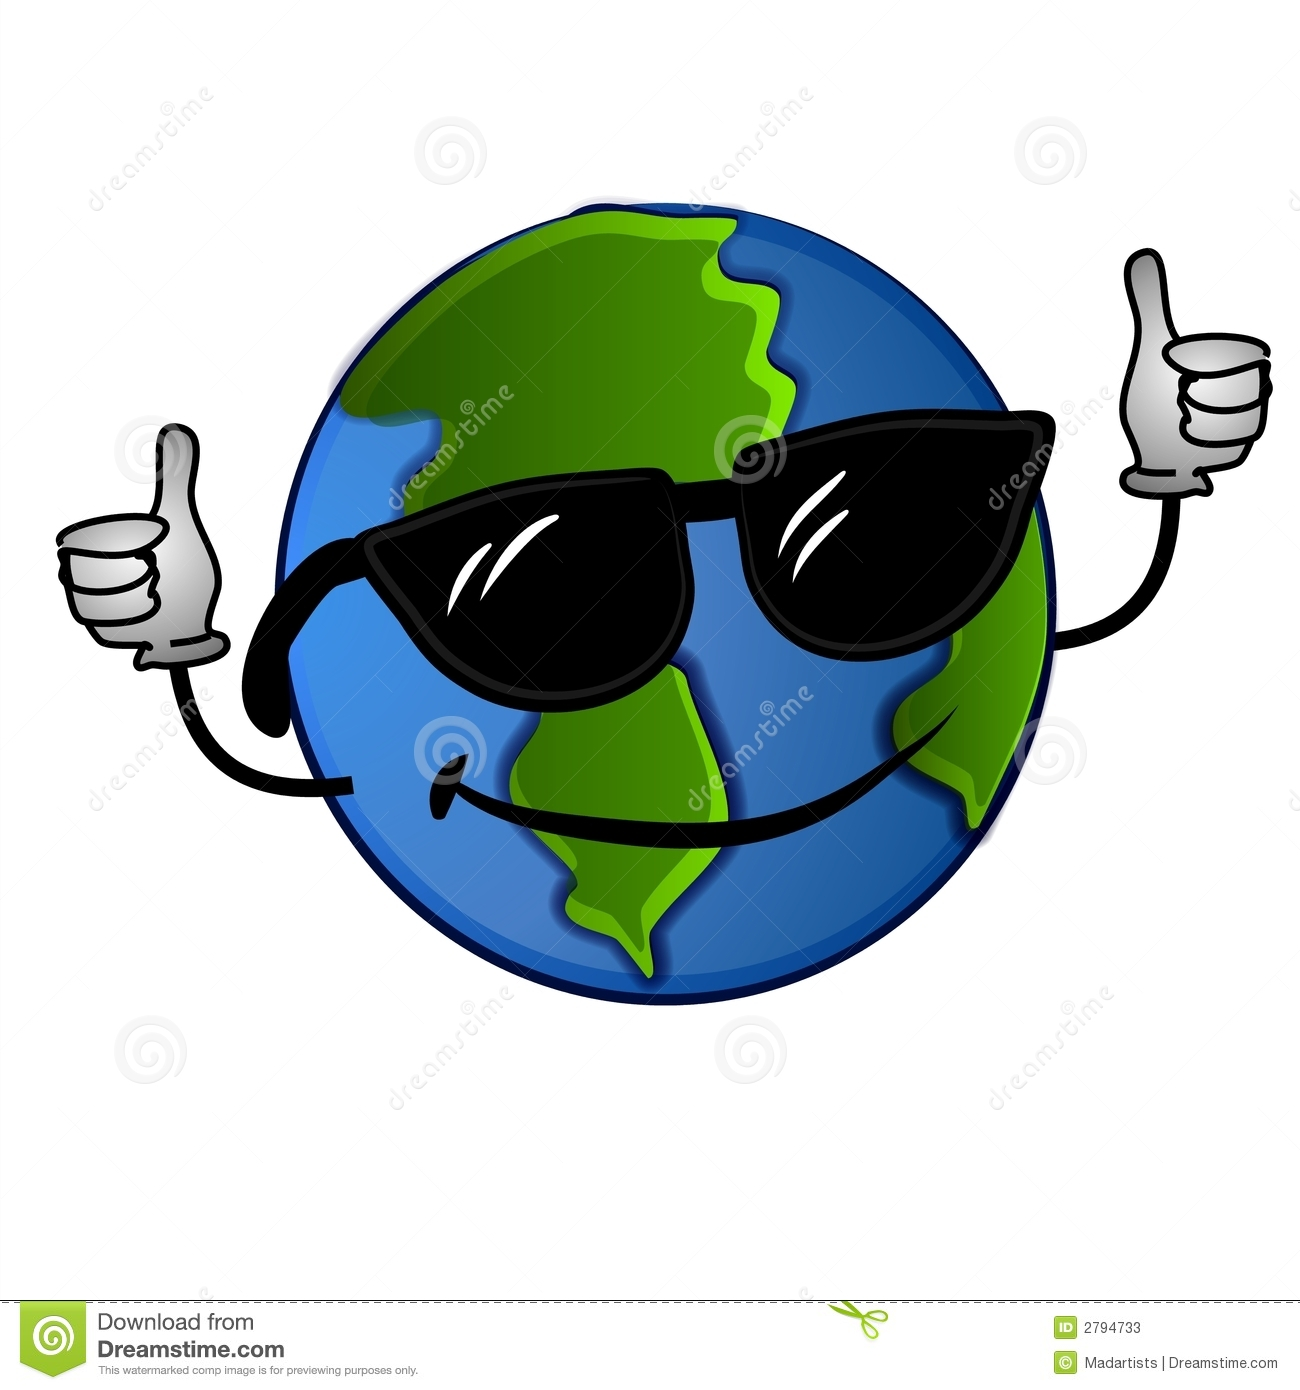 Smiling earth clipart clipart panda free clipart images smiling20earth20clipart publicscrutiny Image collections